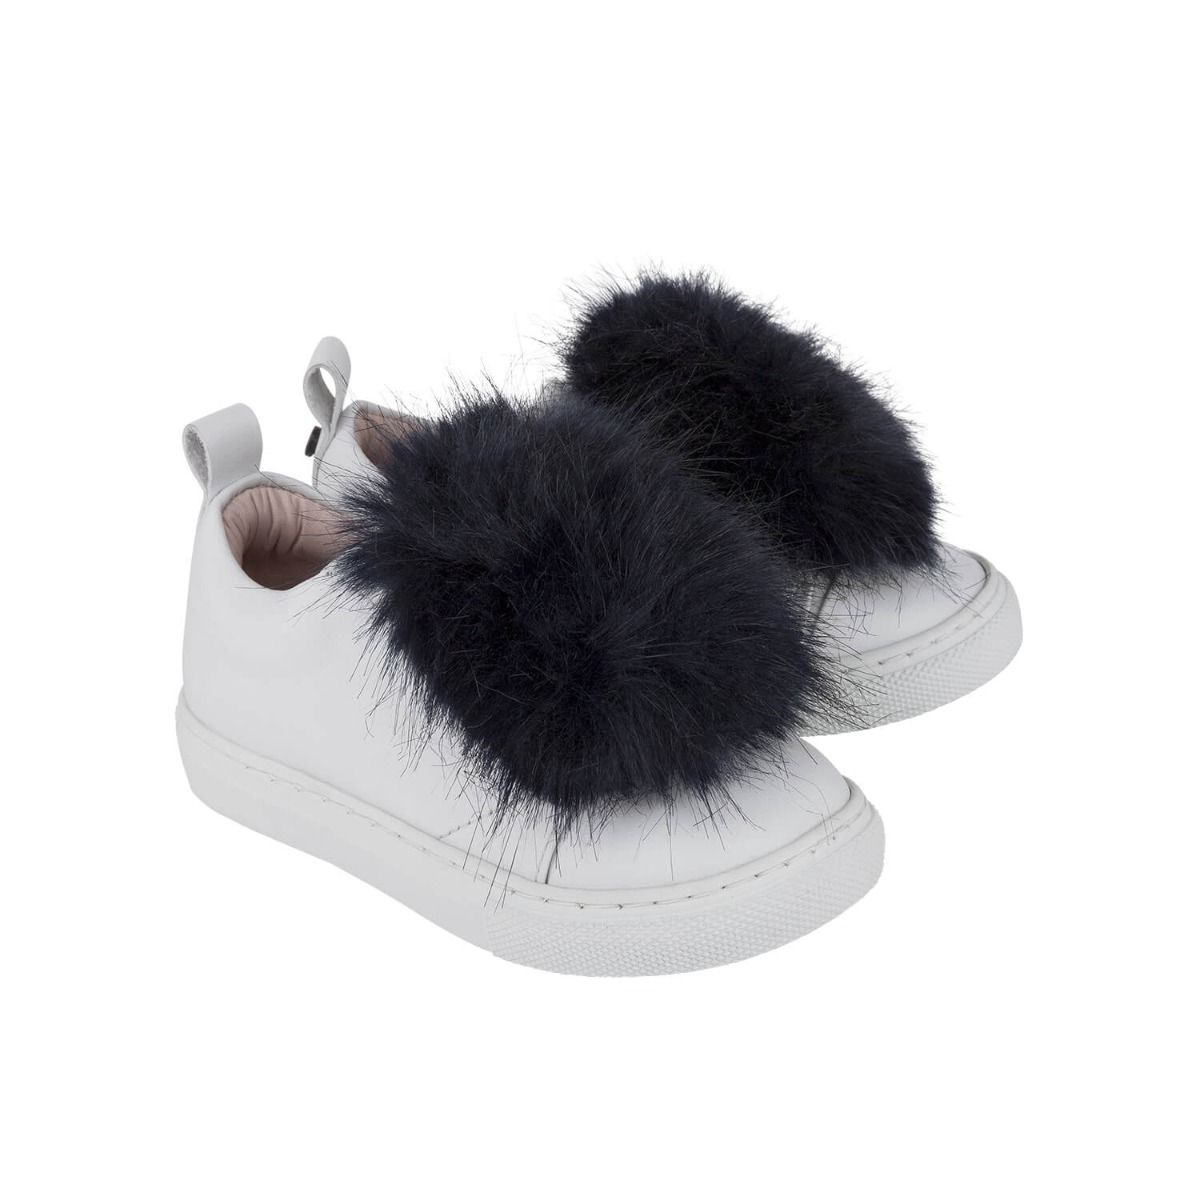 Baby and girl's sneakers in white leather with dark blue fur applique